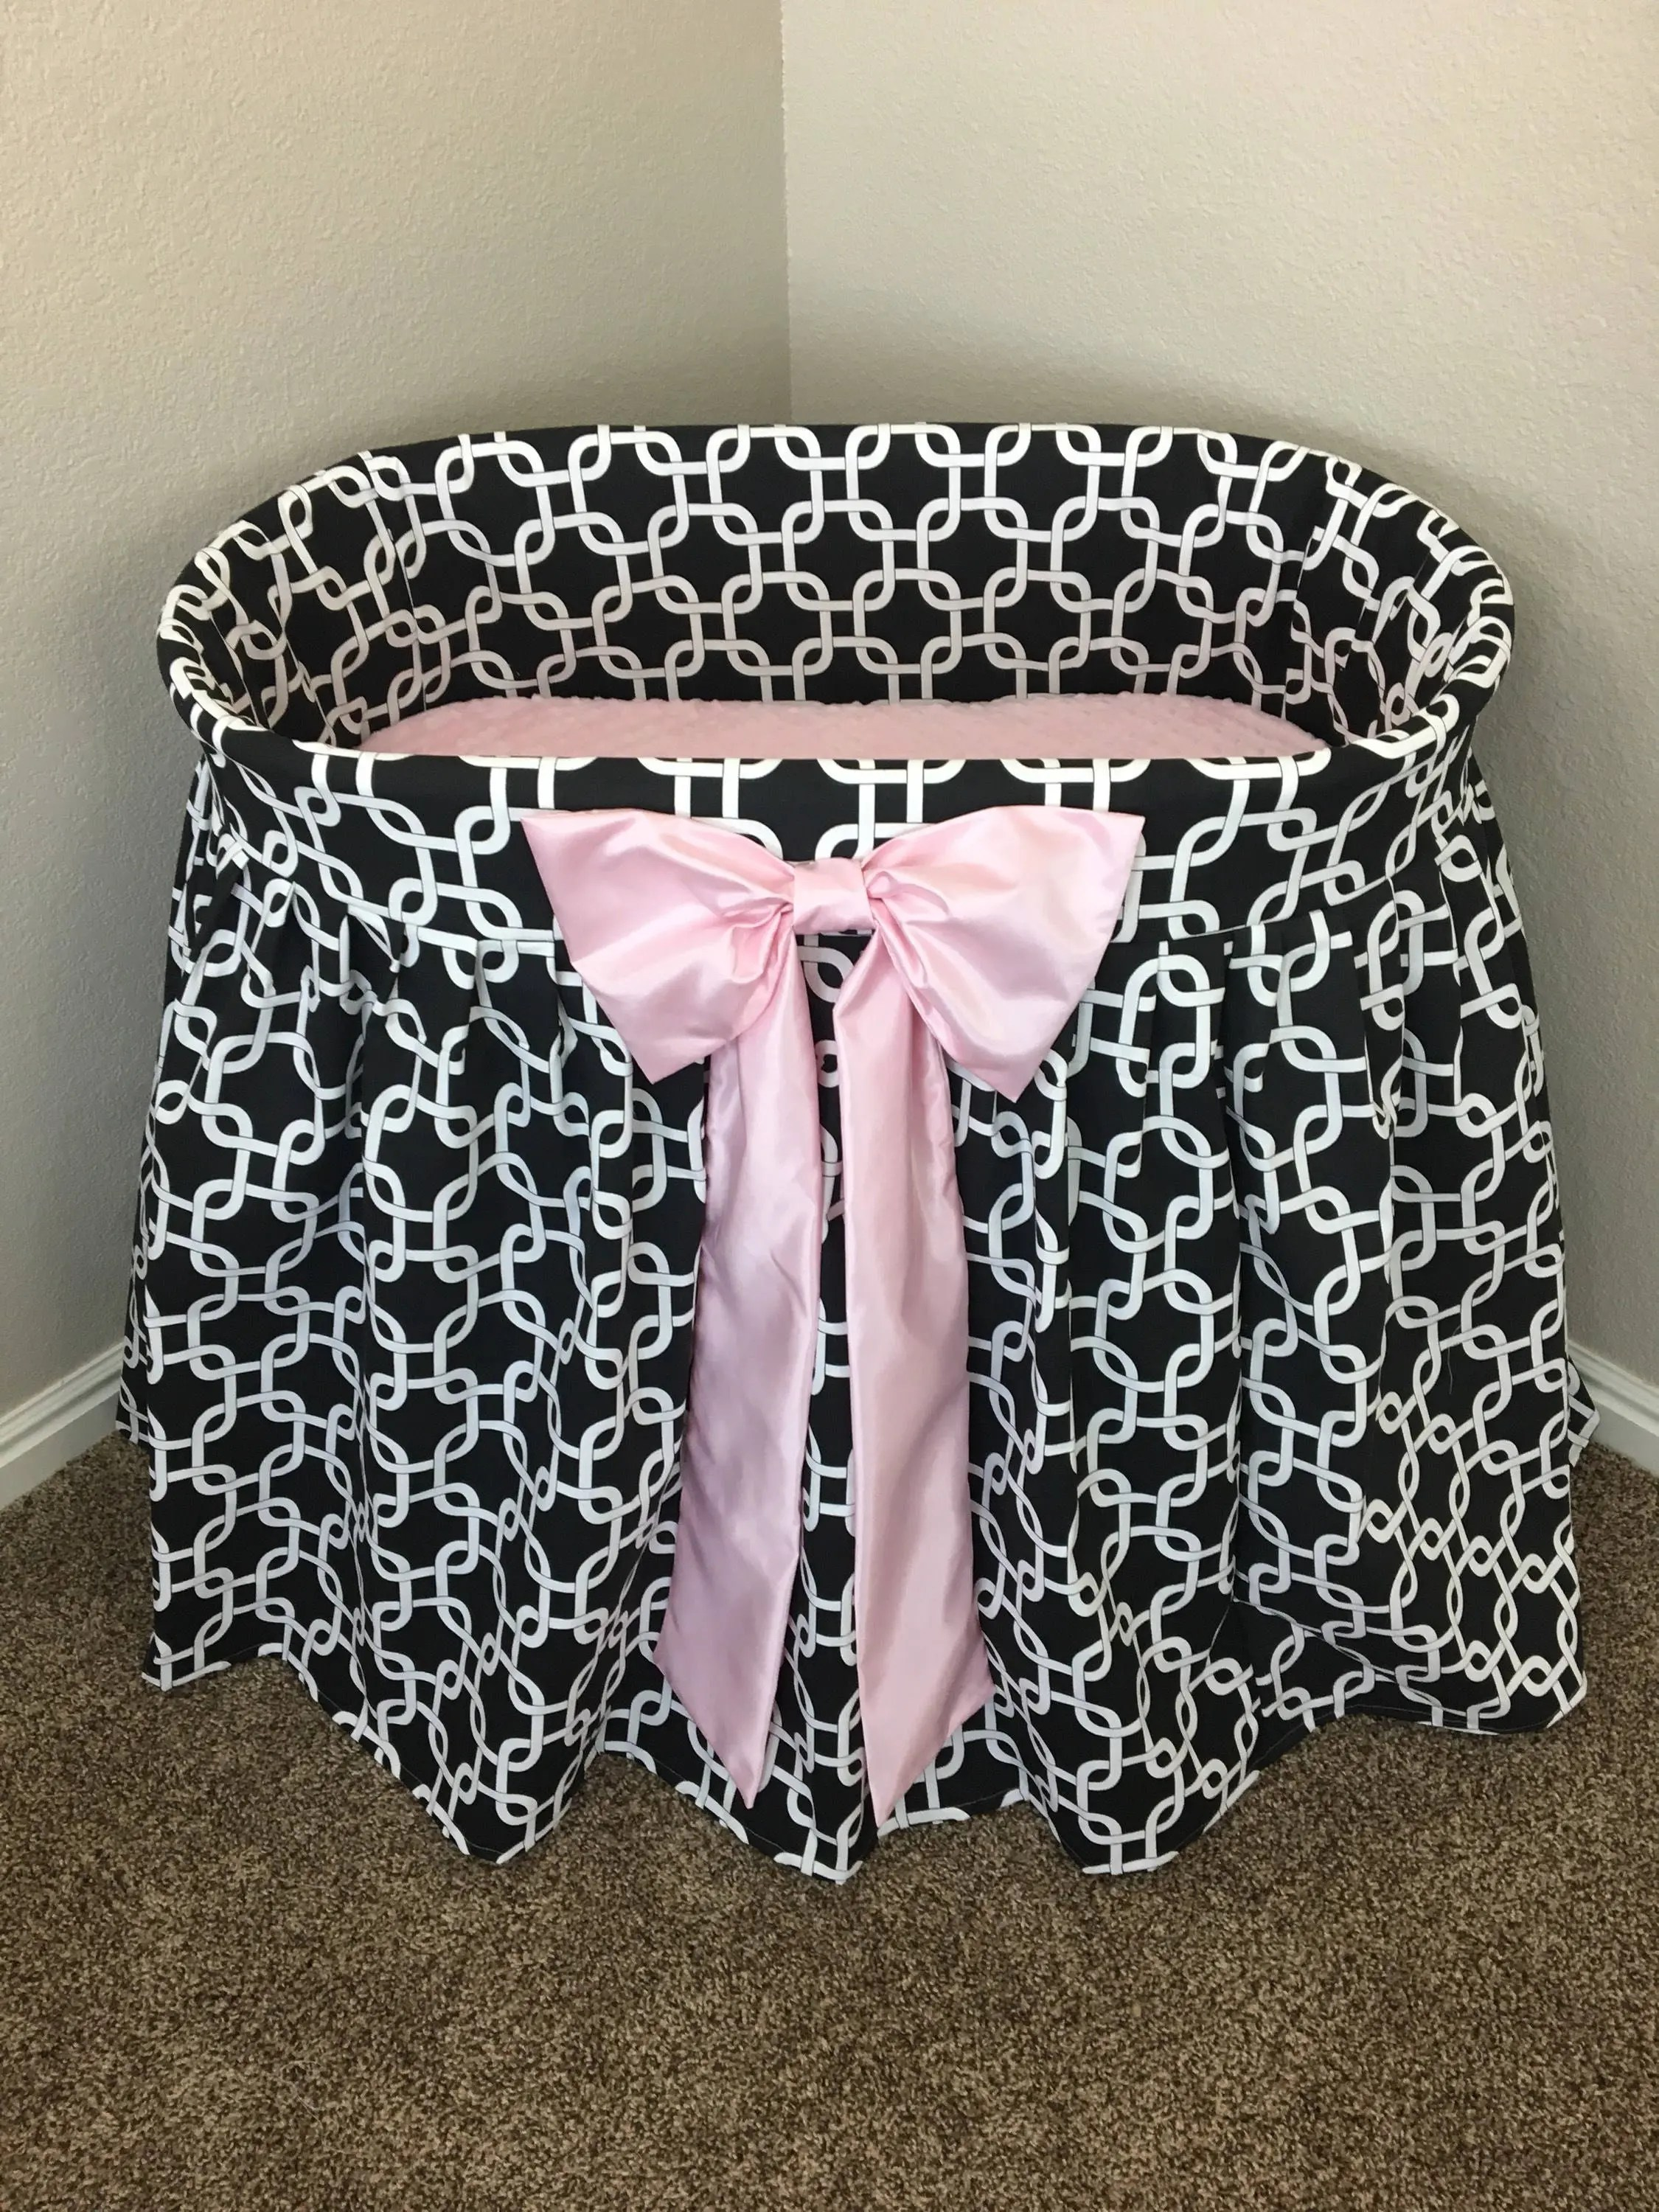 Baby Bassinet Linen Baby Bassinet Cradle Crib Cot Bed Baby Bedding Girl Boy Black And White Pink Satin Ribbon Choose Your Color Abusymother